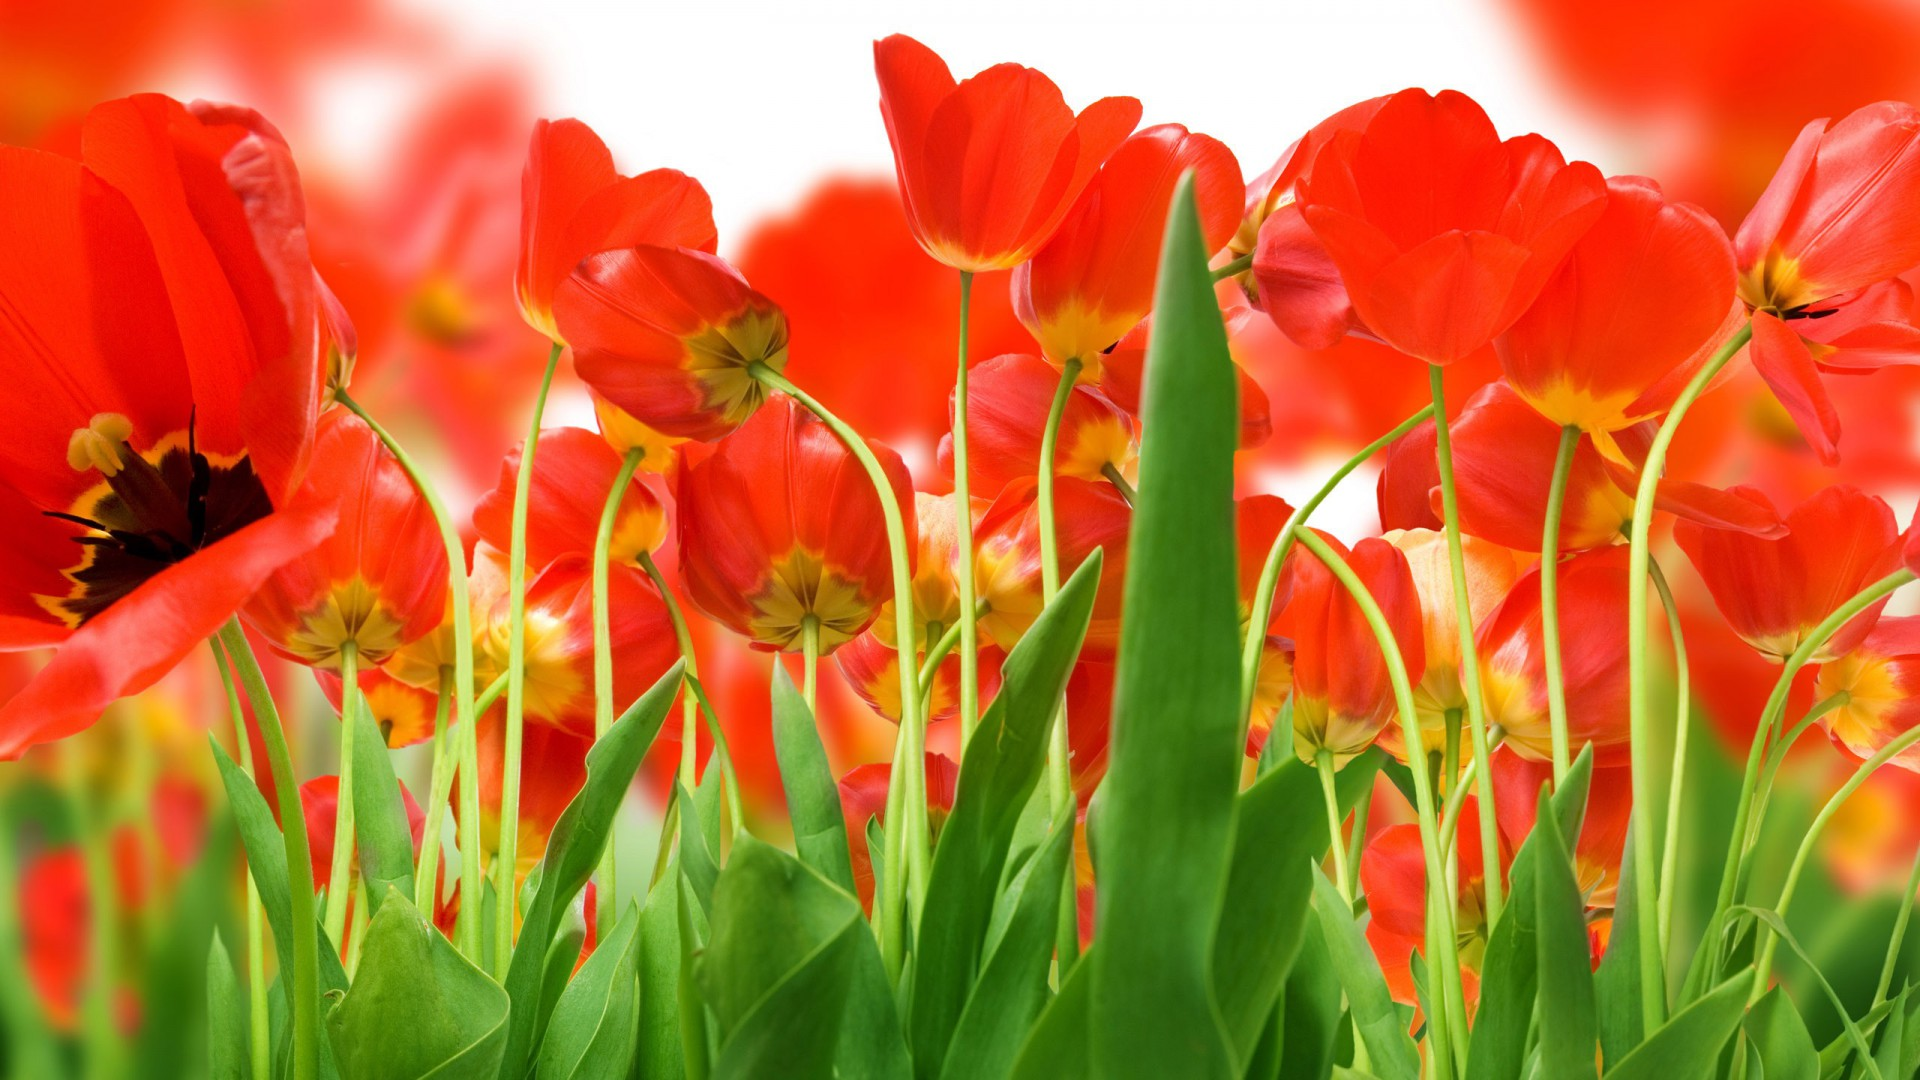 Tulips wallpapers best wallpapers beautiful tulips wallpaper voltagebd Image collections